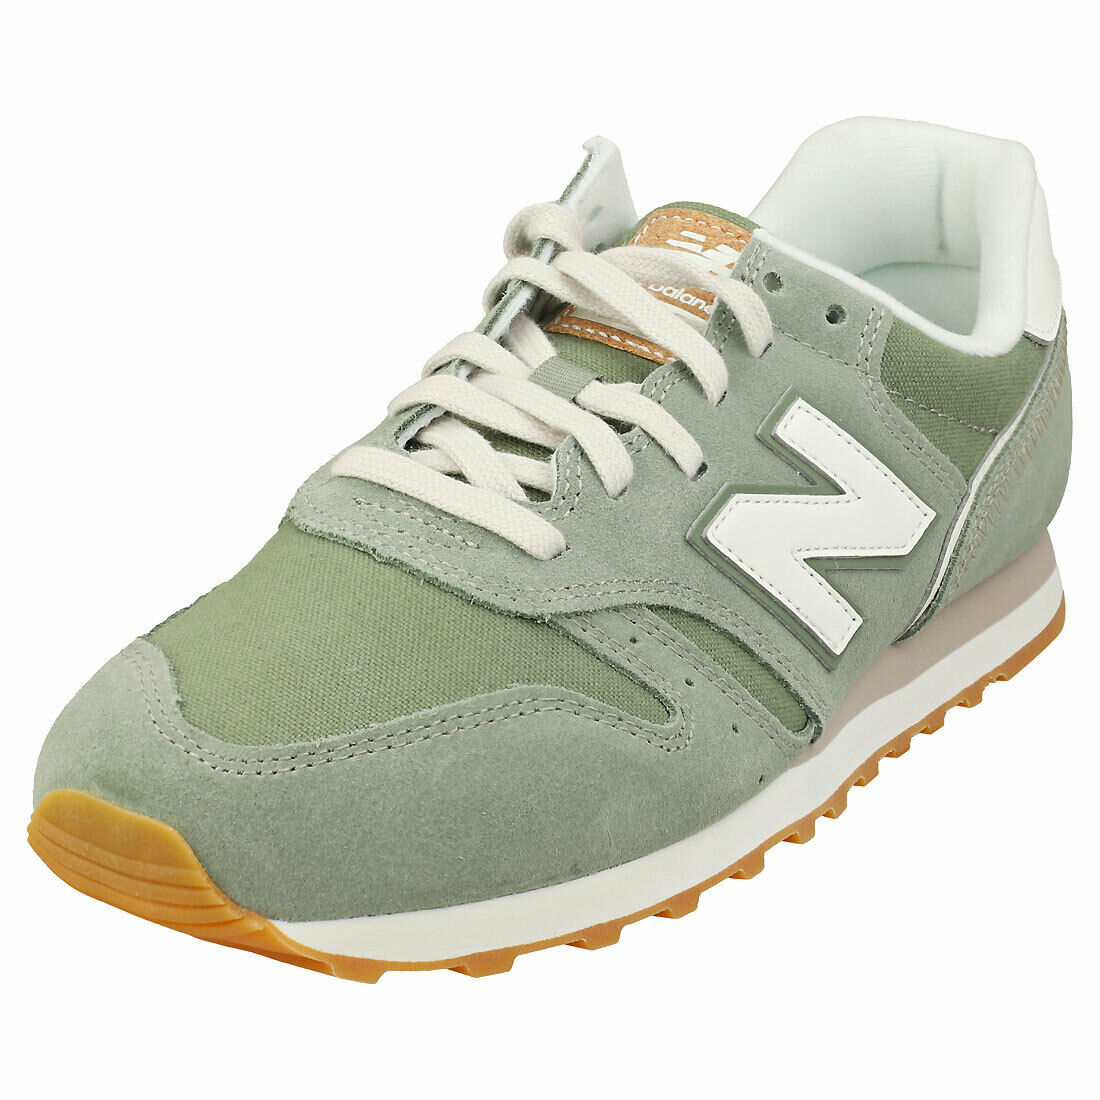 New Balance 373 Mens Green Casual Trainers - 7 UK